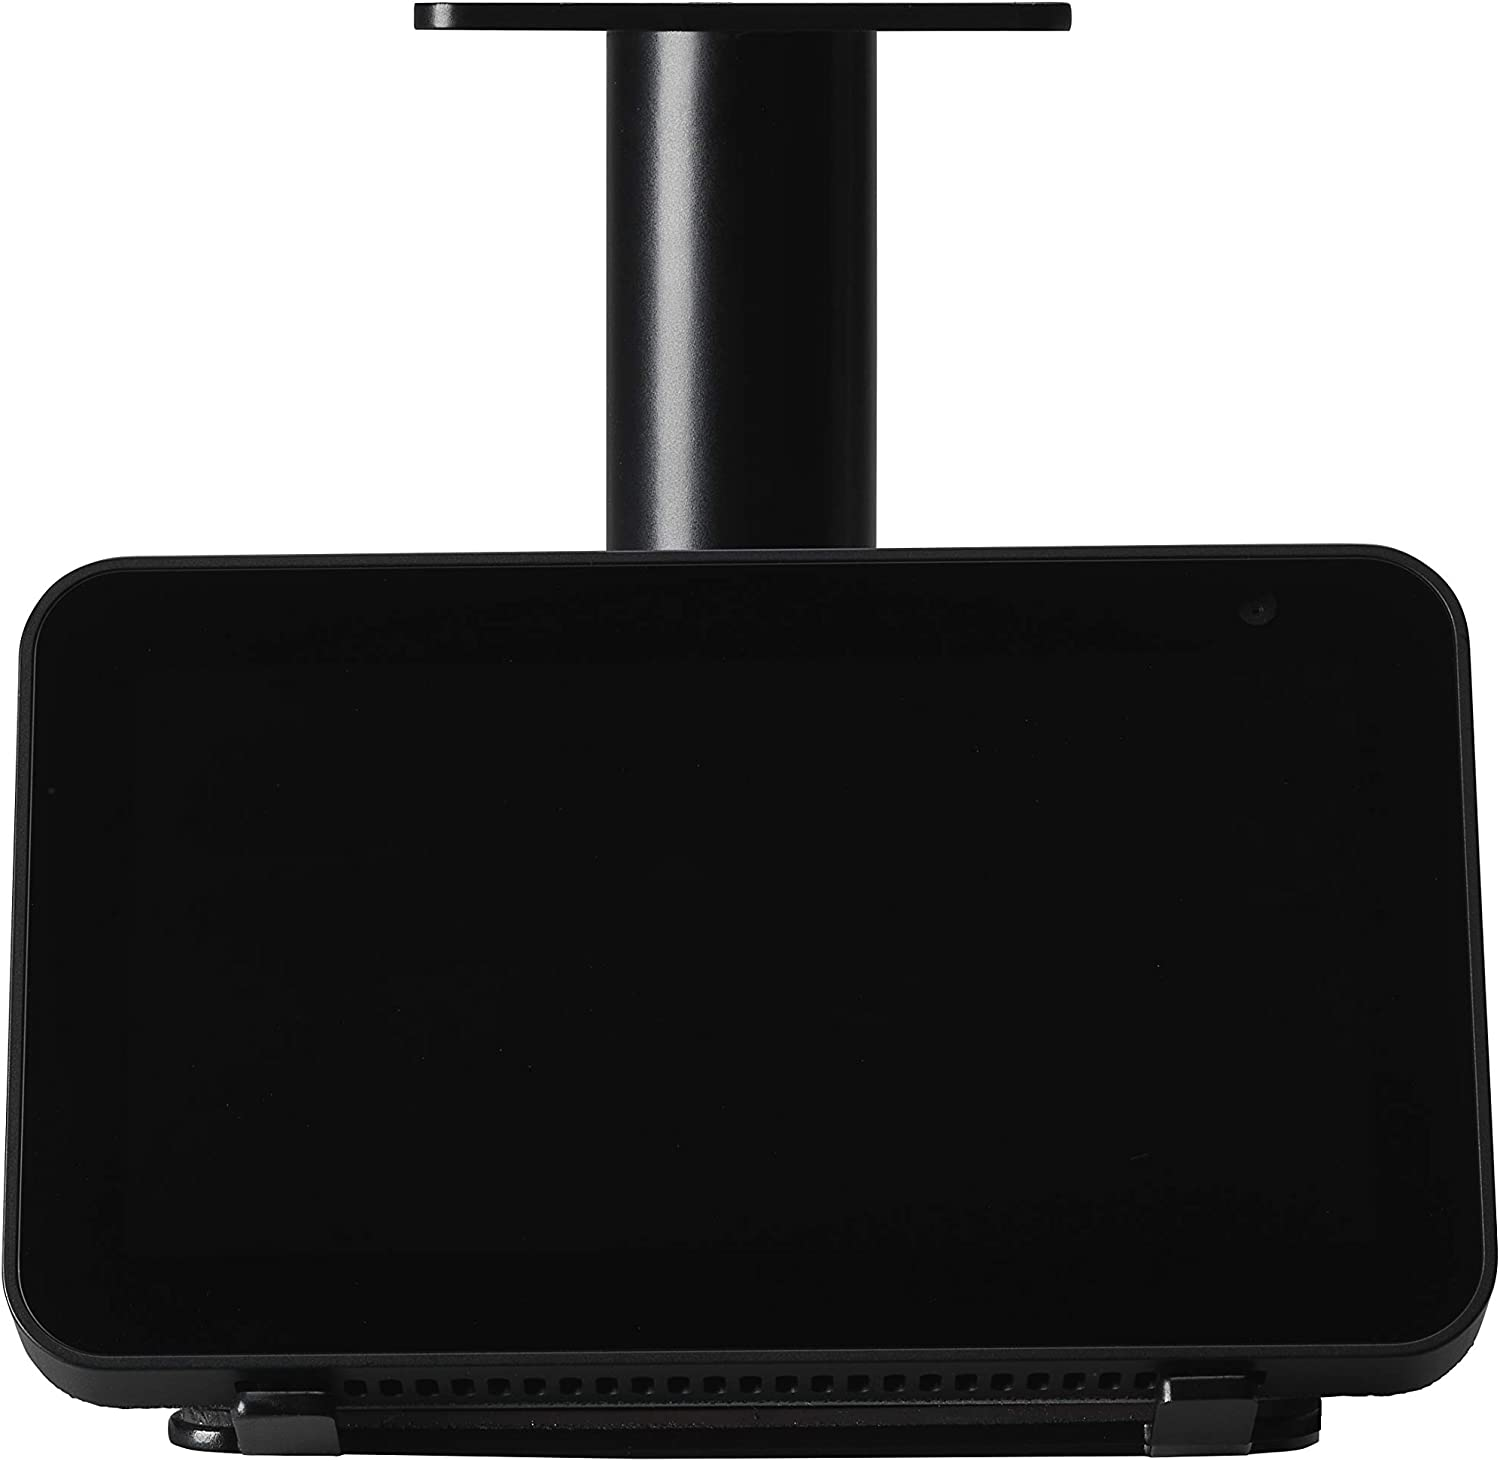 SoundXtra Cabinet Mount for Amazon Echo Show 5 - Black